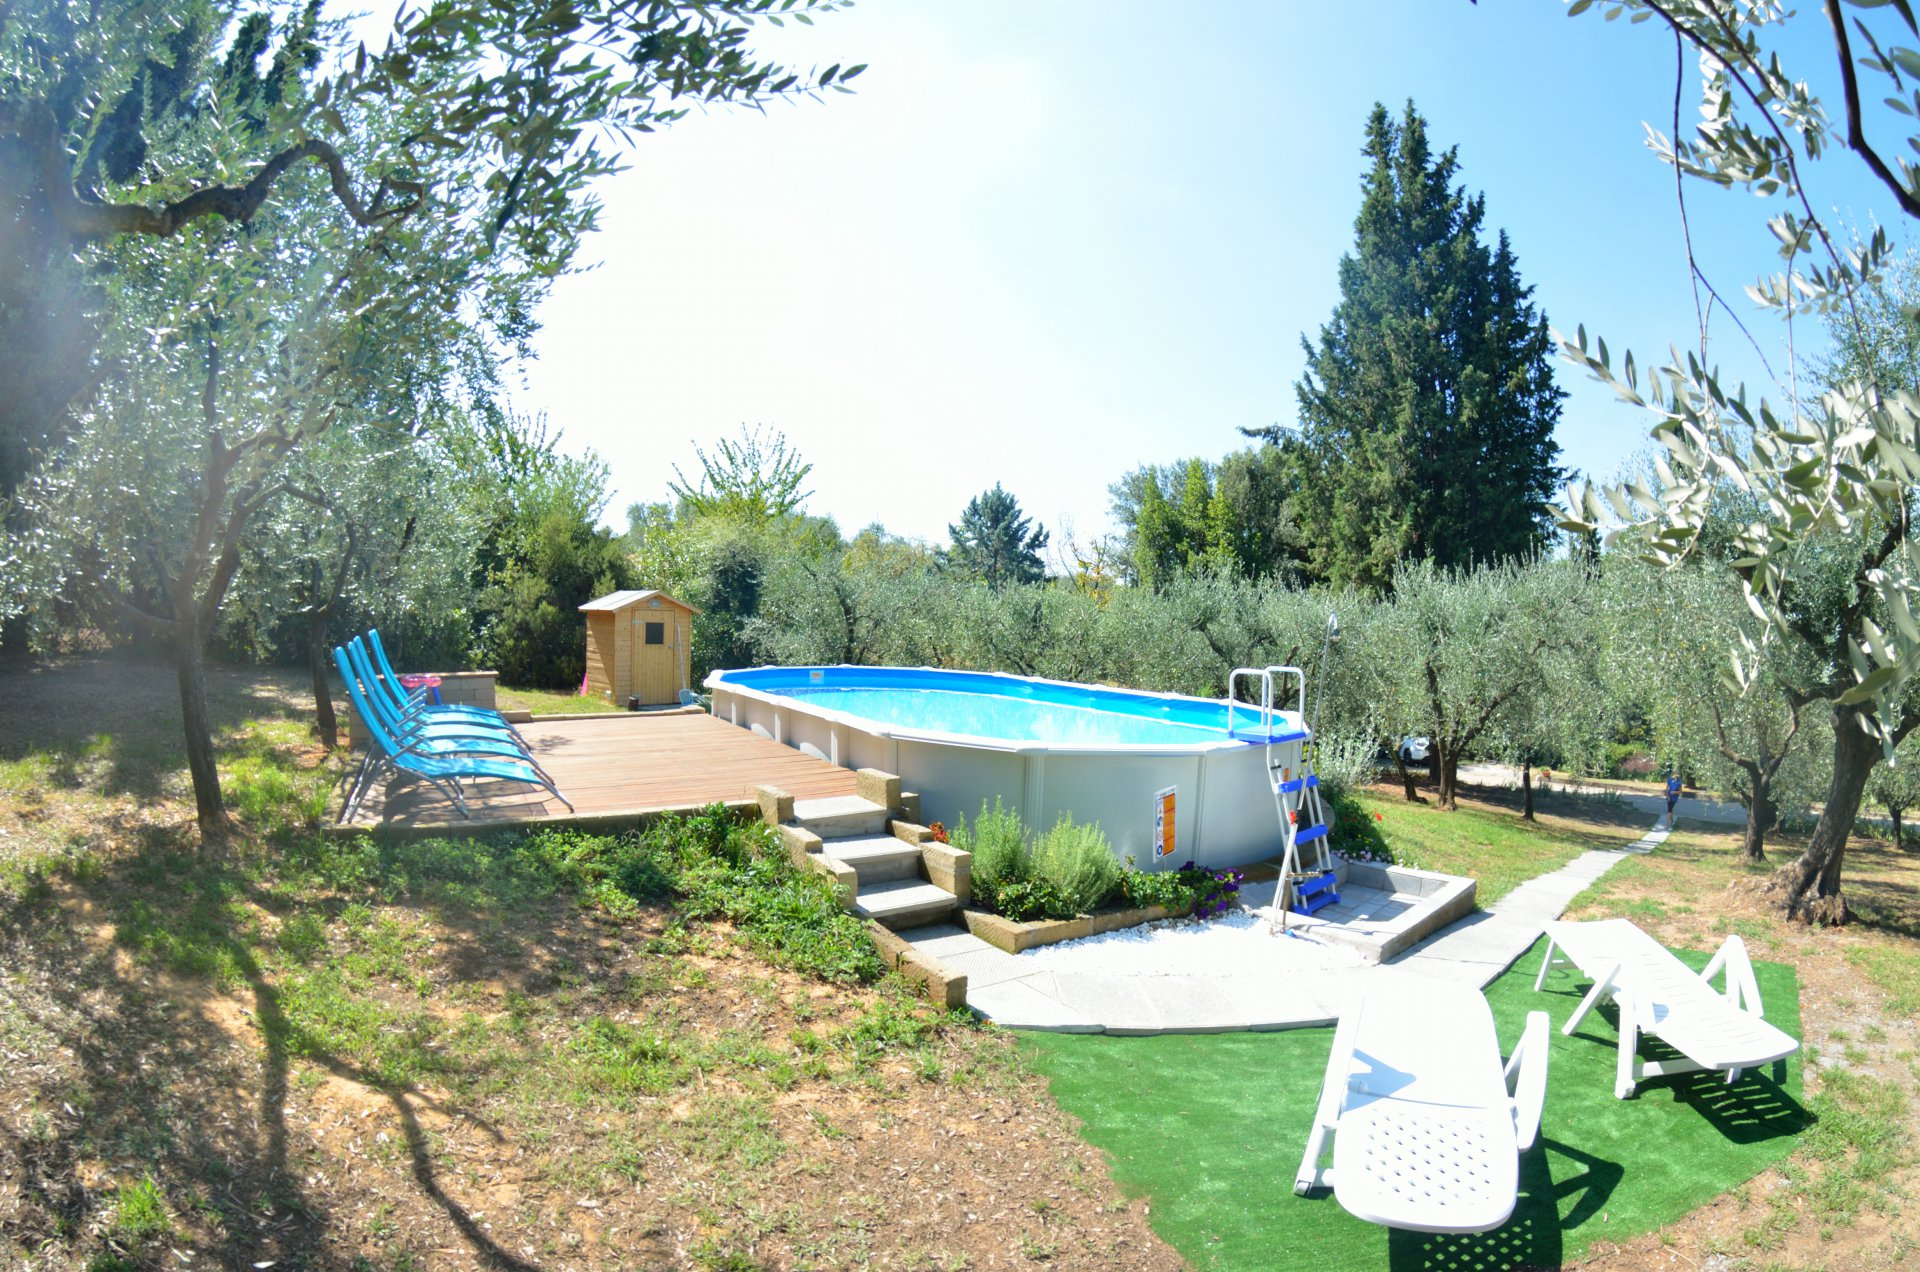 ITALY, TUSCANY, PESCIA, COTTAGE WITH POOL, FOR 5 PERSONS